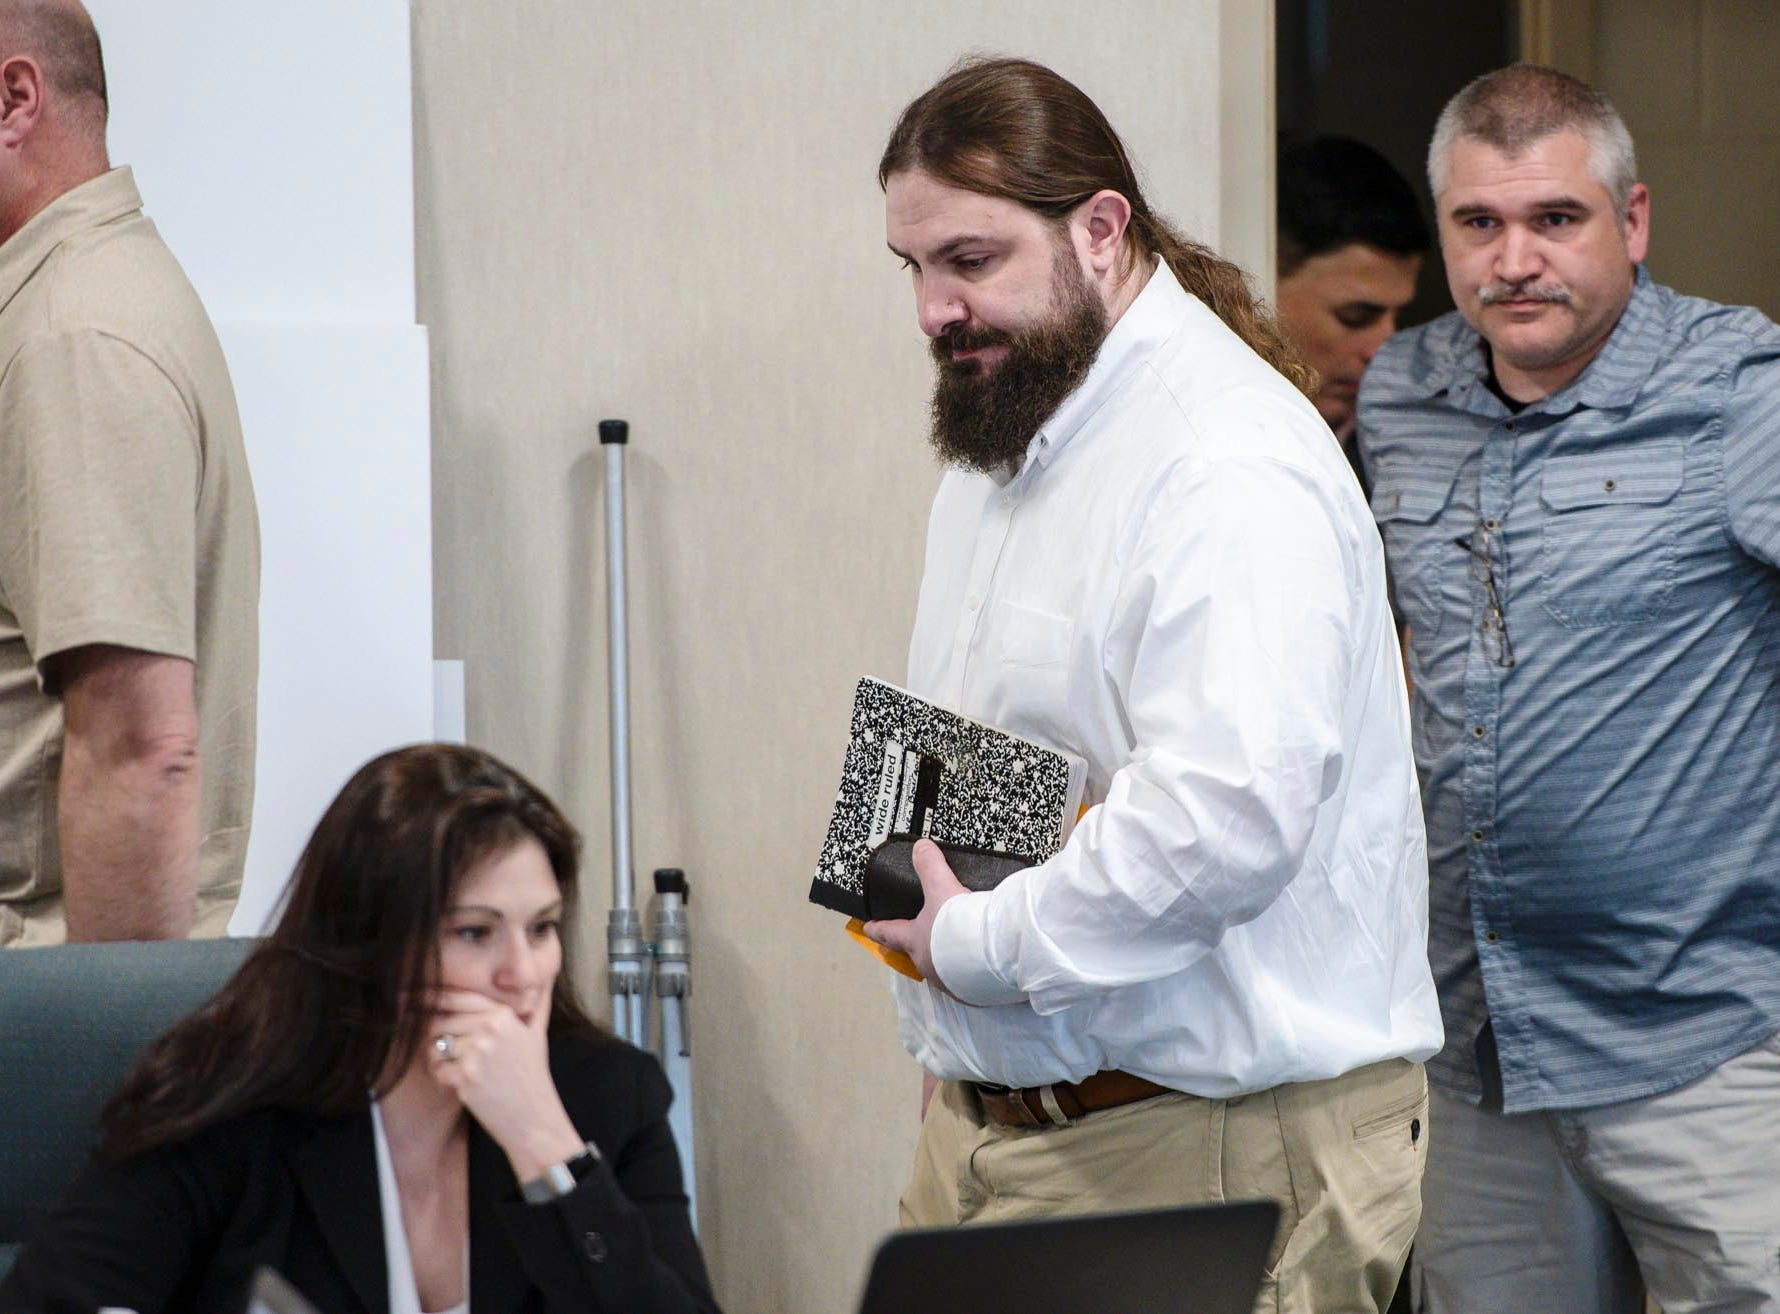 Steven Bourgoin arrives in court for his murder trial in Vermont Superior Court in Burlington on Tuesday, May 7, 2019. Bourgoin is facing five counts of second-degree murder for a crash that killed five teenagers on I-89 in Williston in 2016. Pool photo by Glenn Russell/VTDigger